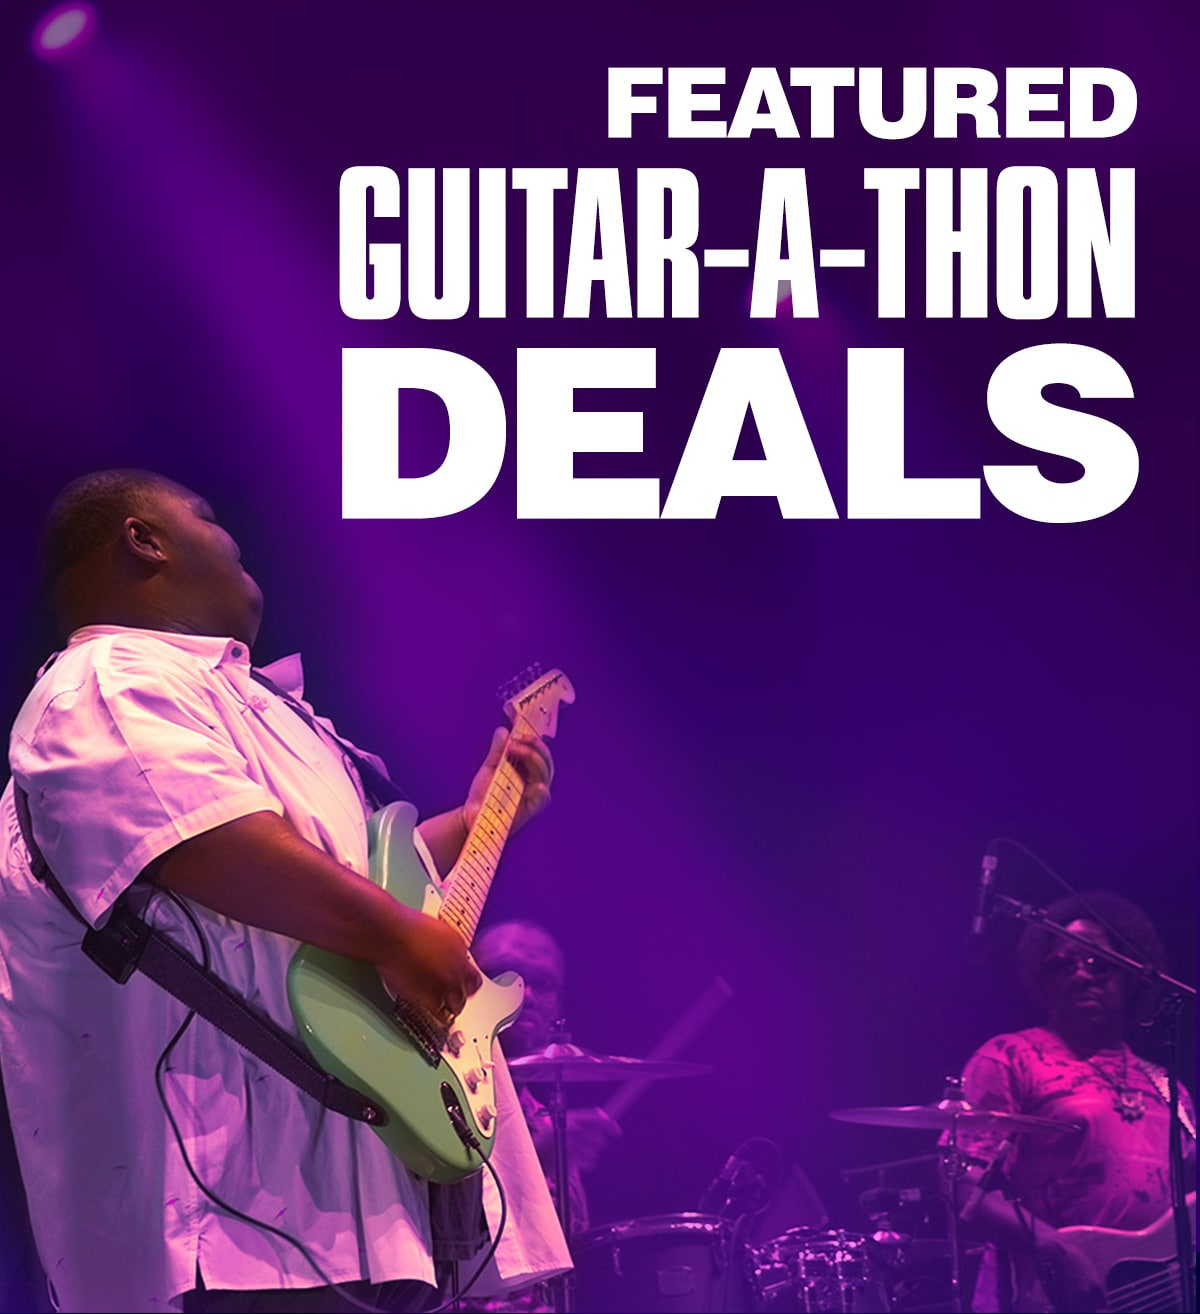 Featured Guitar-A-Thon Deals.